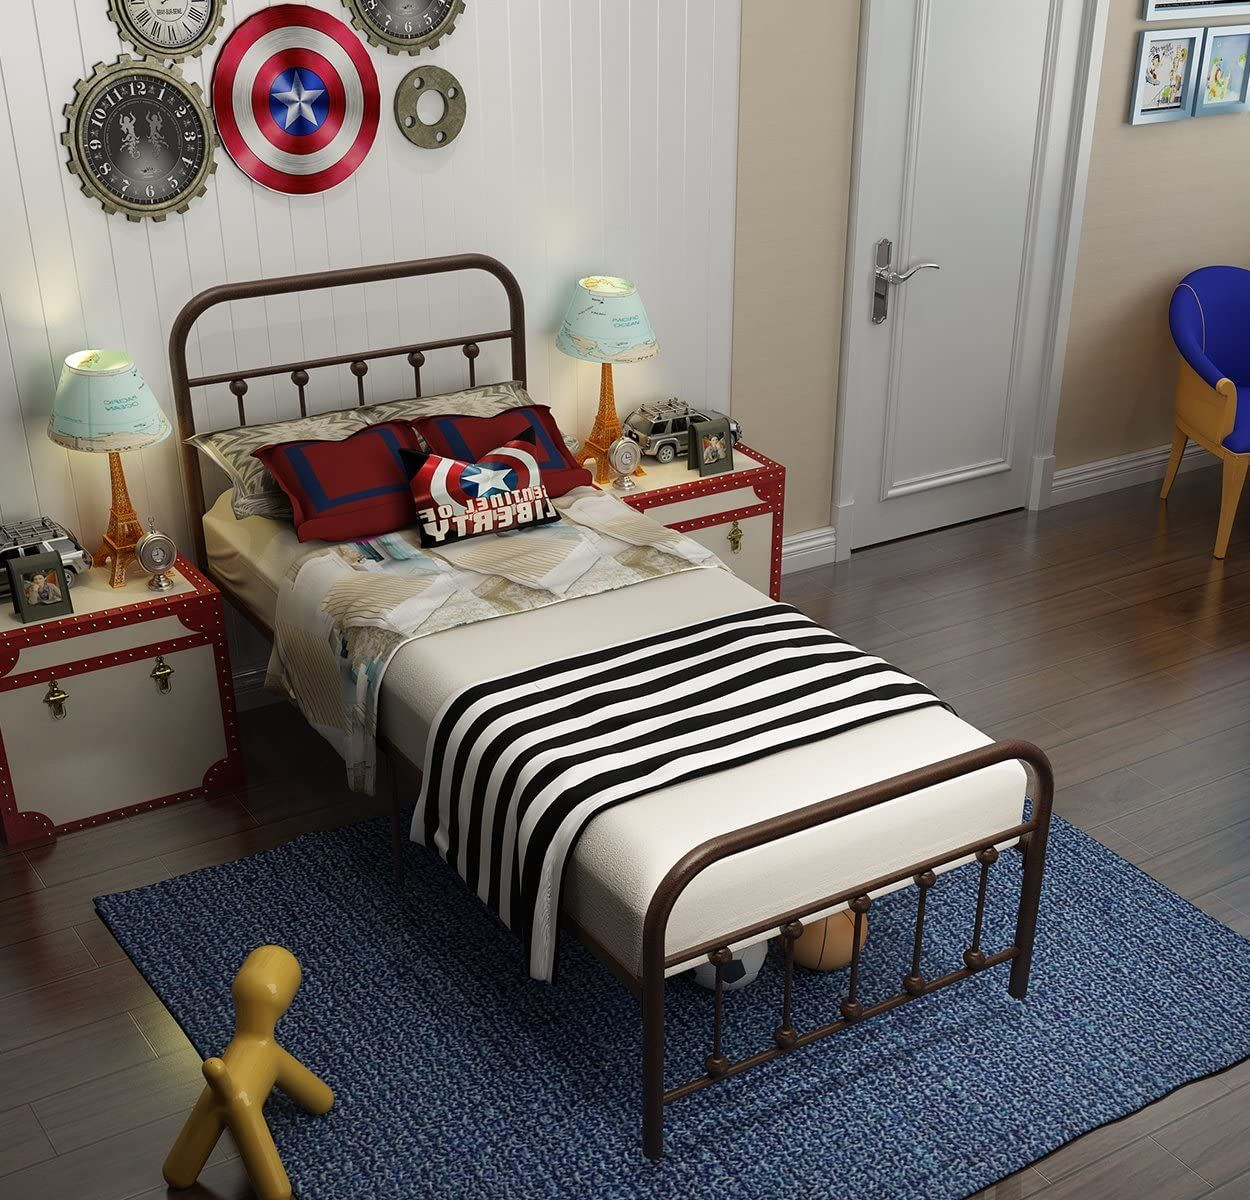 Pin on home: kids room